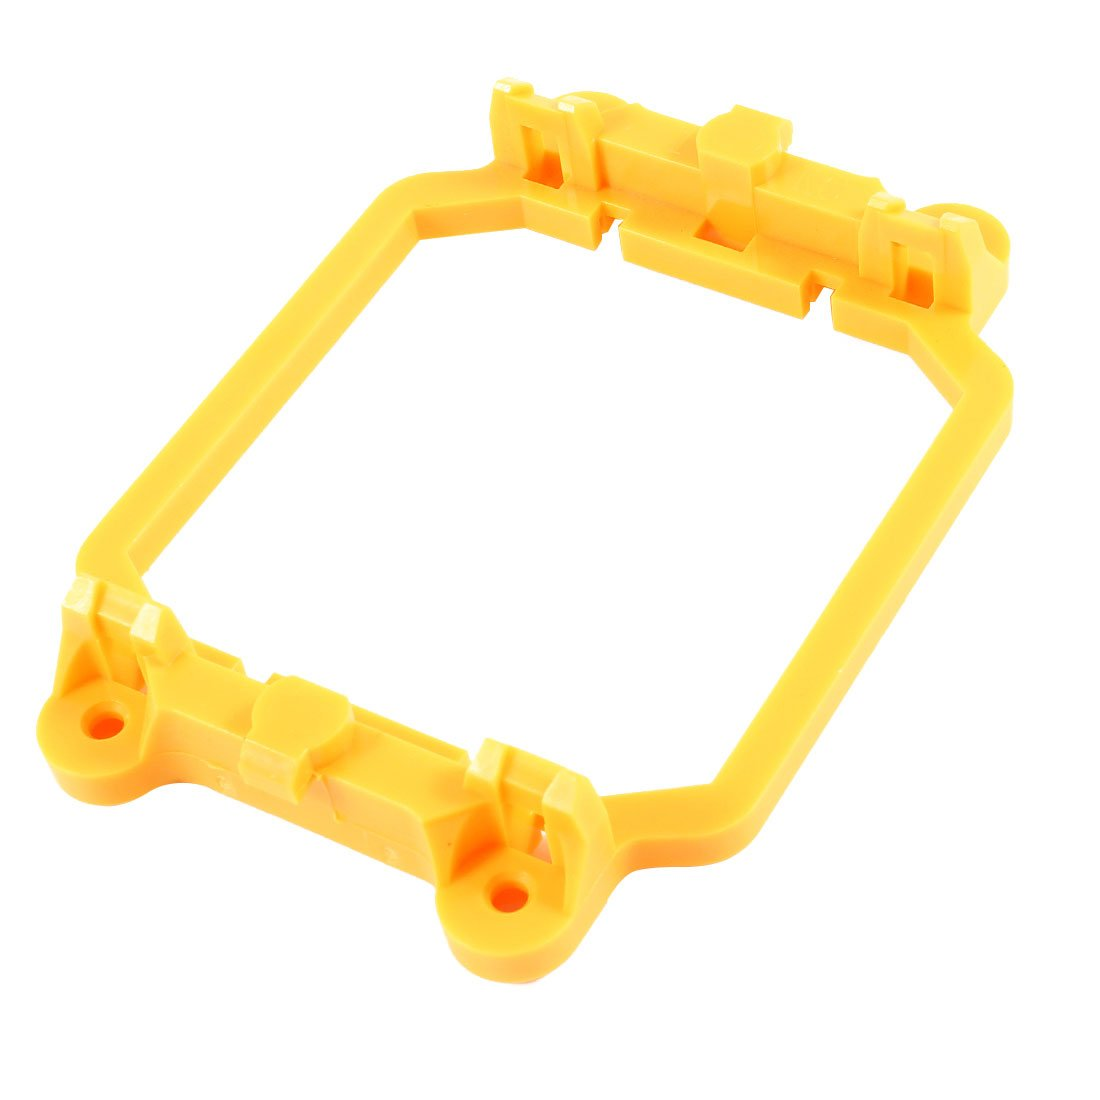 uxcell PC Computer Fan Retainer Bracket Stand Yellow for AMD AM2 AM3 Socket